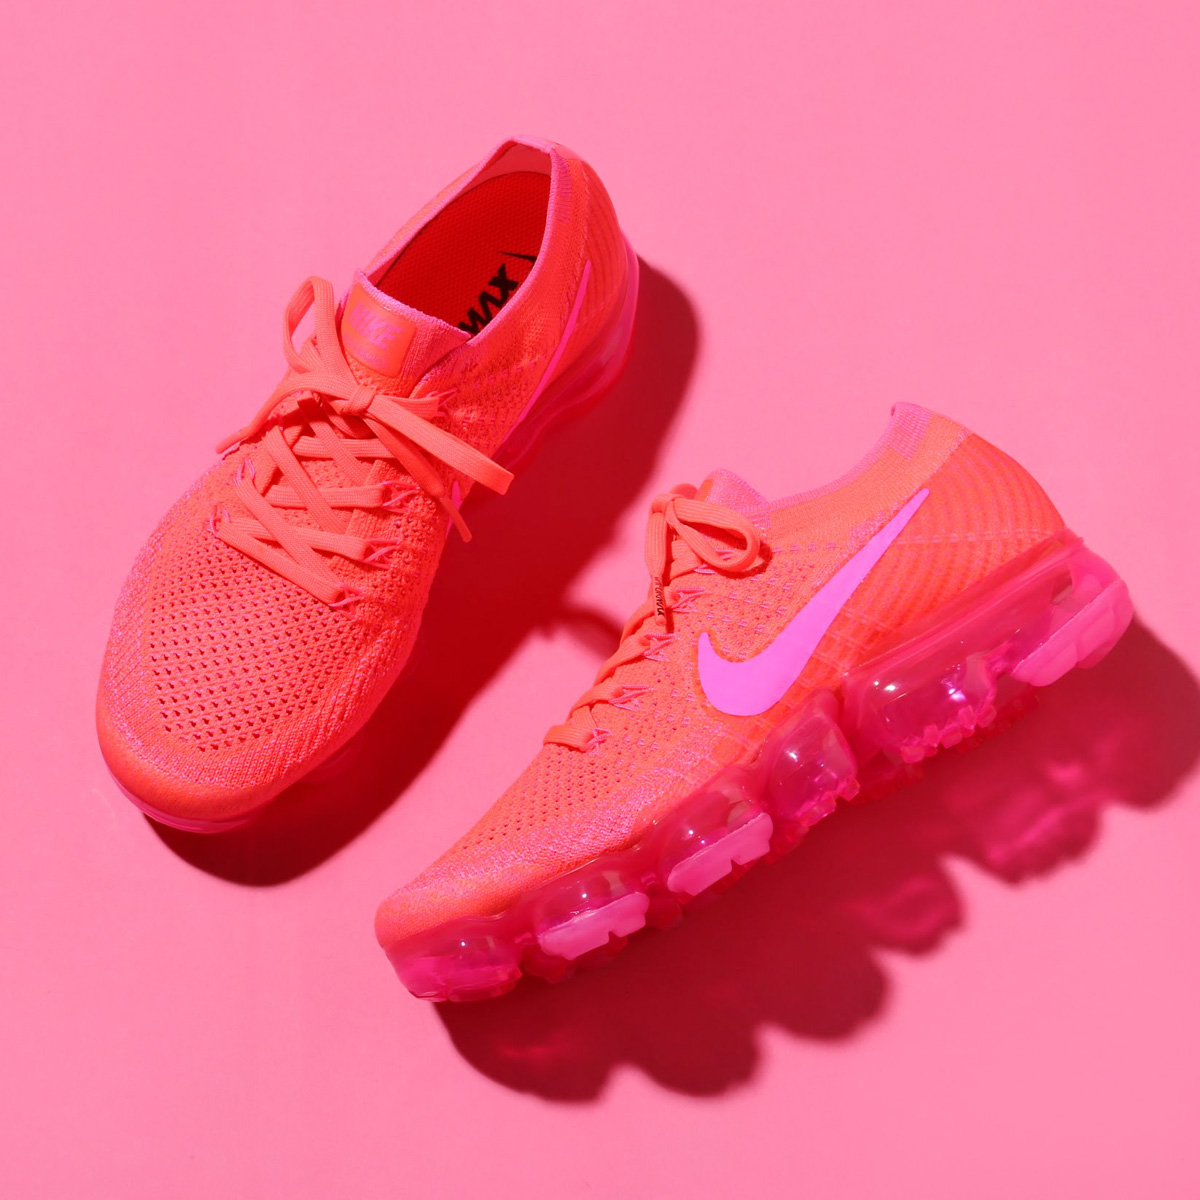 6811256ae909 NIKE WMNS AIR VAPORMAX FLYKNIT (Nike women air vapor max fried food knit)  (HYPER PUNCH PINK BLAST-HOT PUNCH-BLACK) 18SP-S